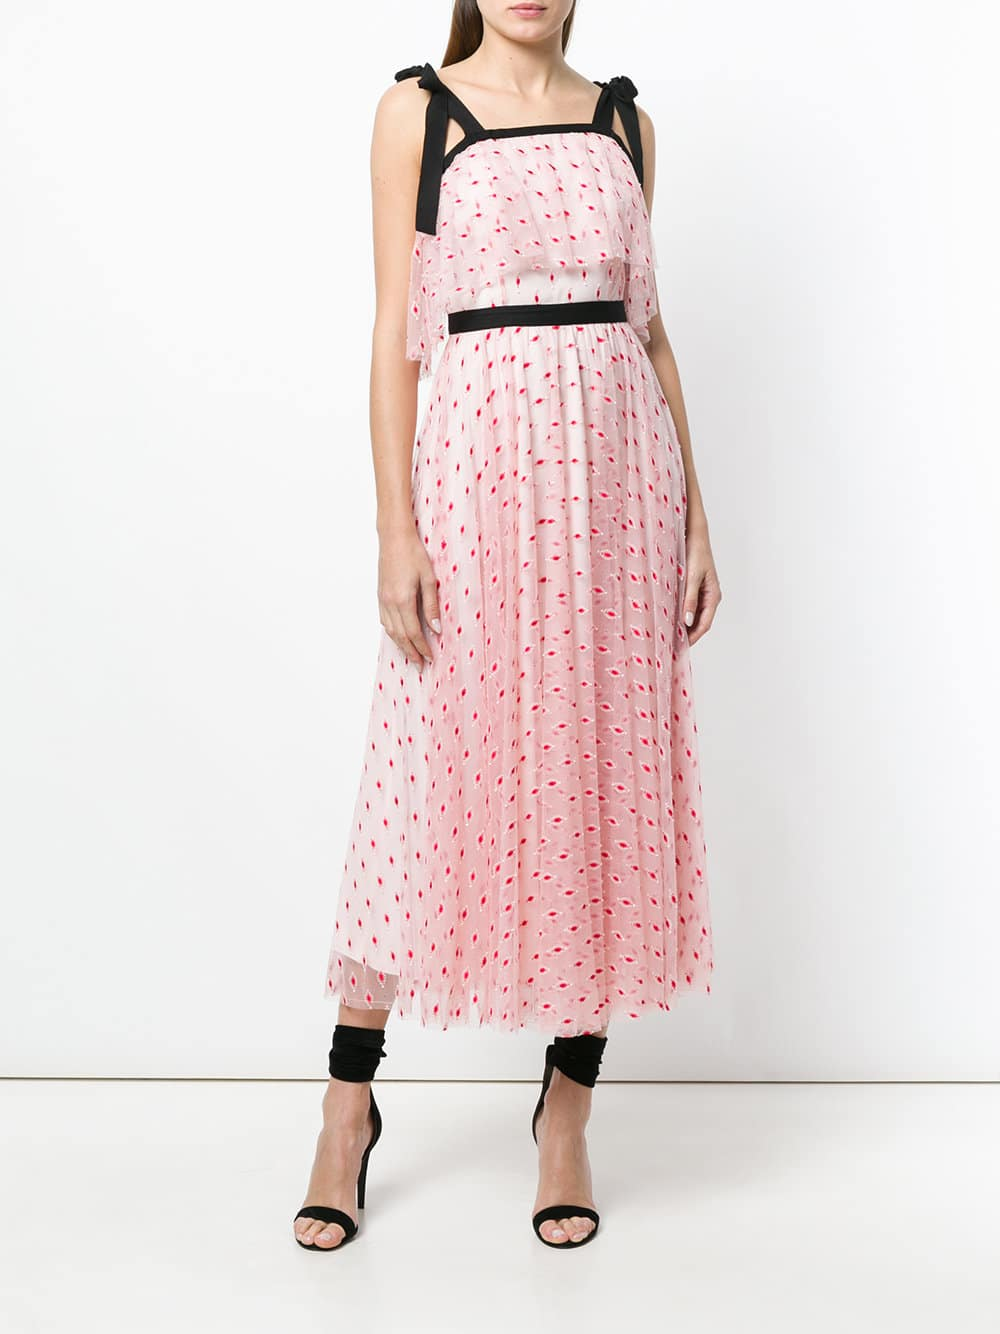 PHILOSOPHY DI LORENZO SERAFINI Bow Tie Blush Pink Dress - We Select ...